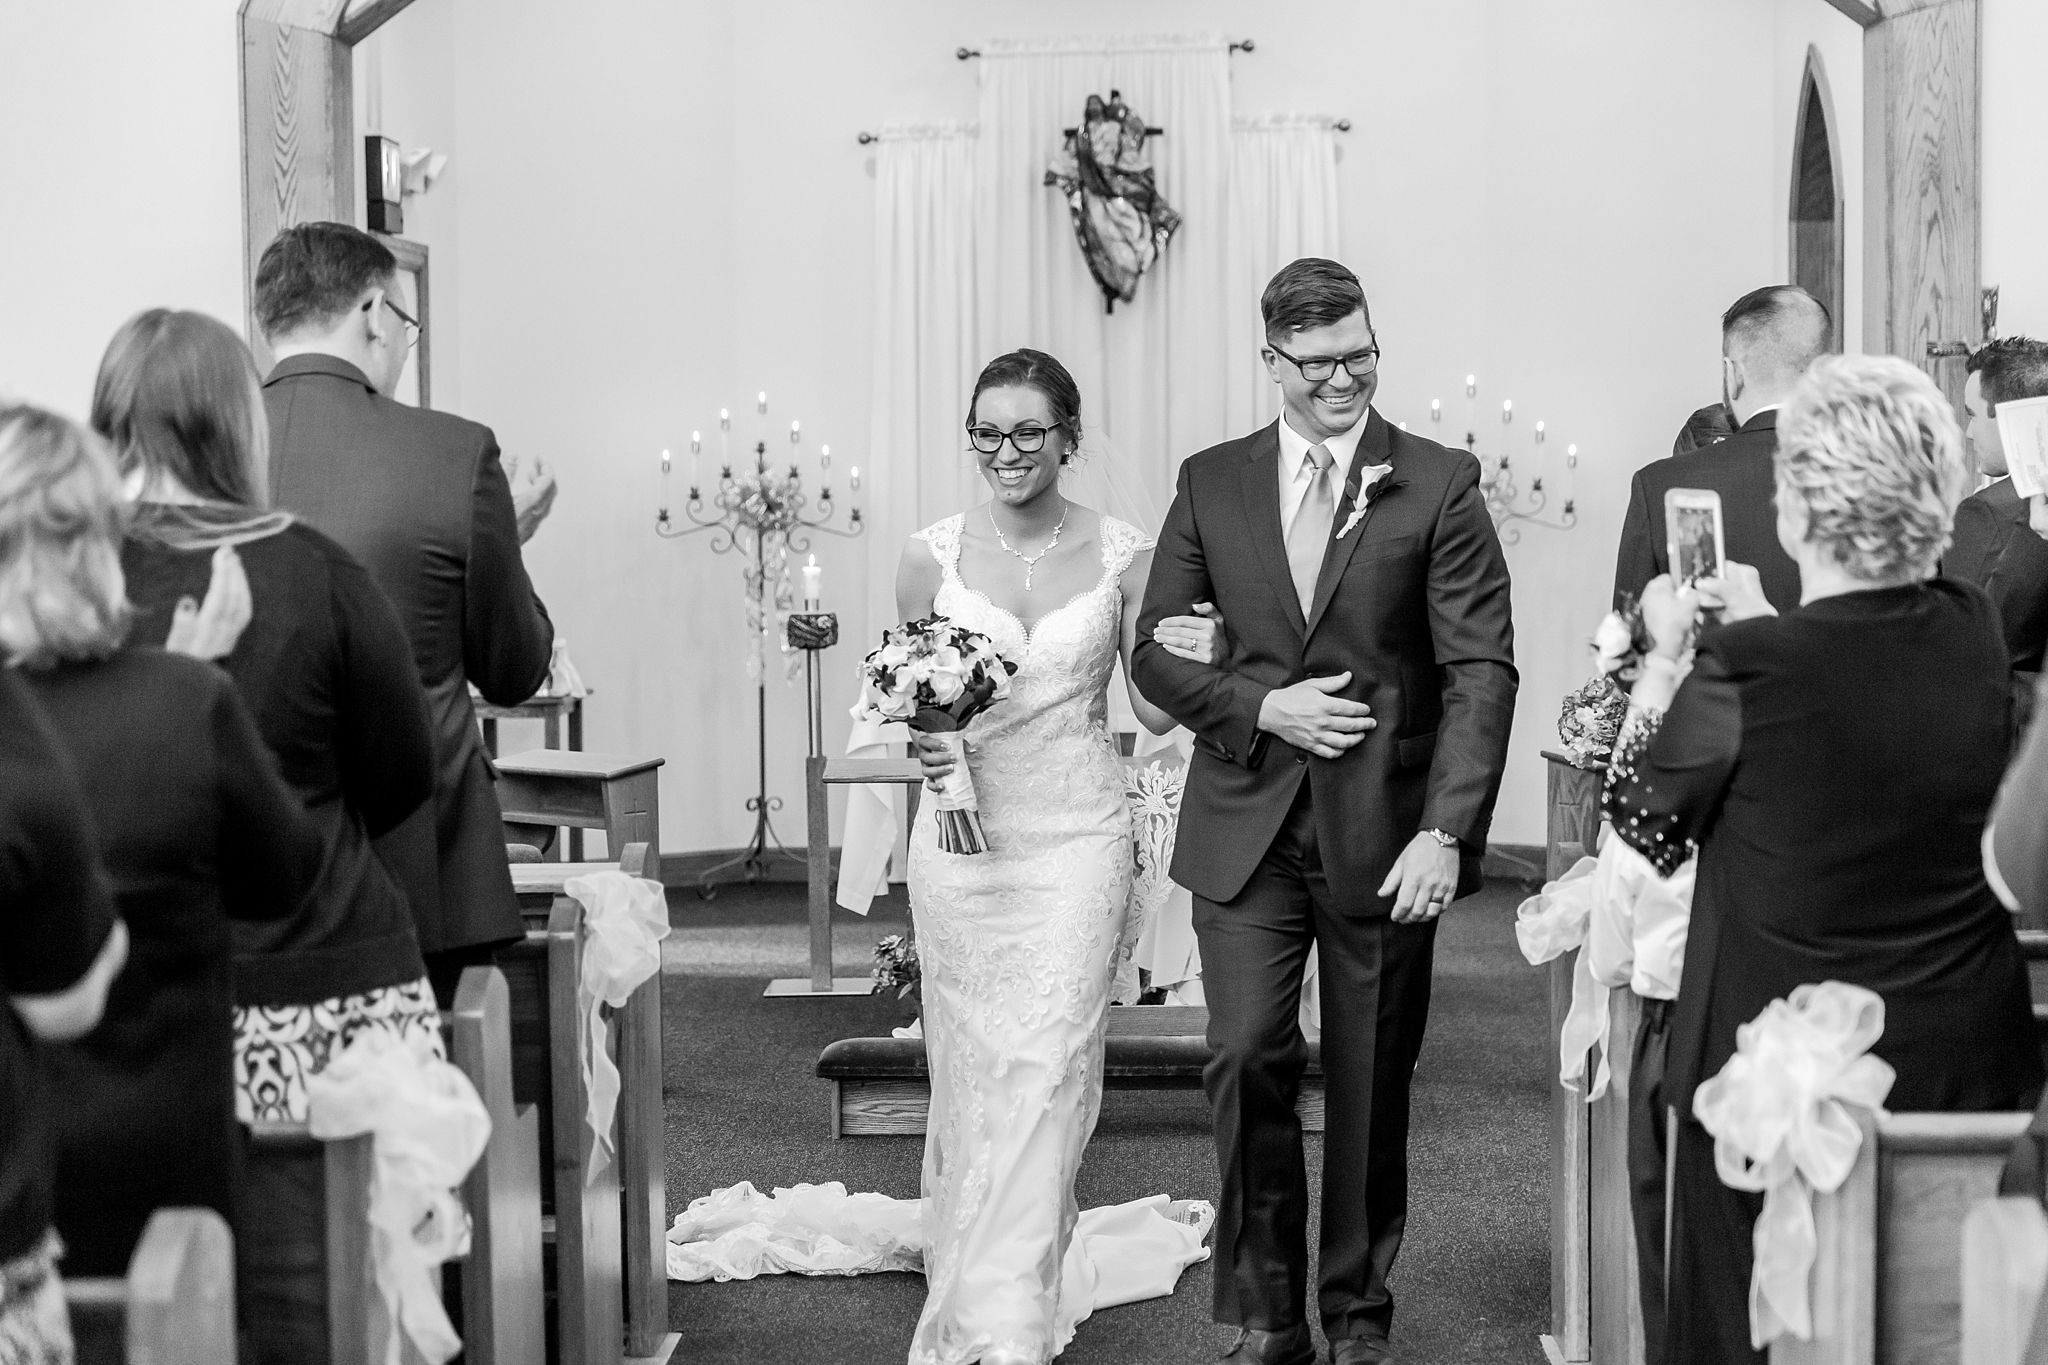 classic-timeless-candid-wedding-photos-in-grosse-ile-and-trenton-michigan-by-courtney-carolyn-photography_0027.jpg